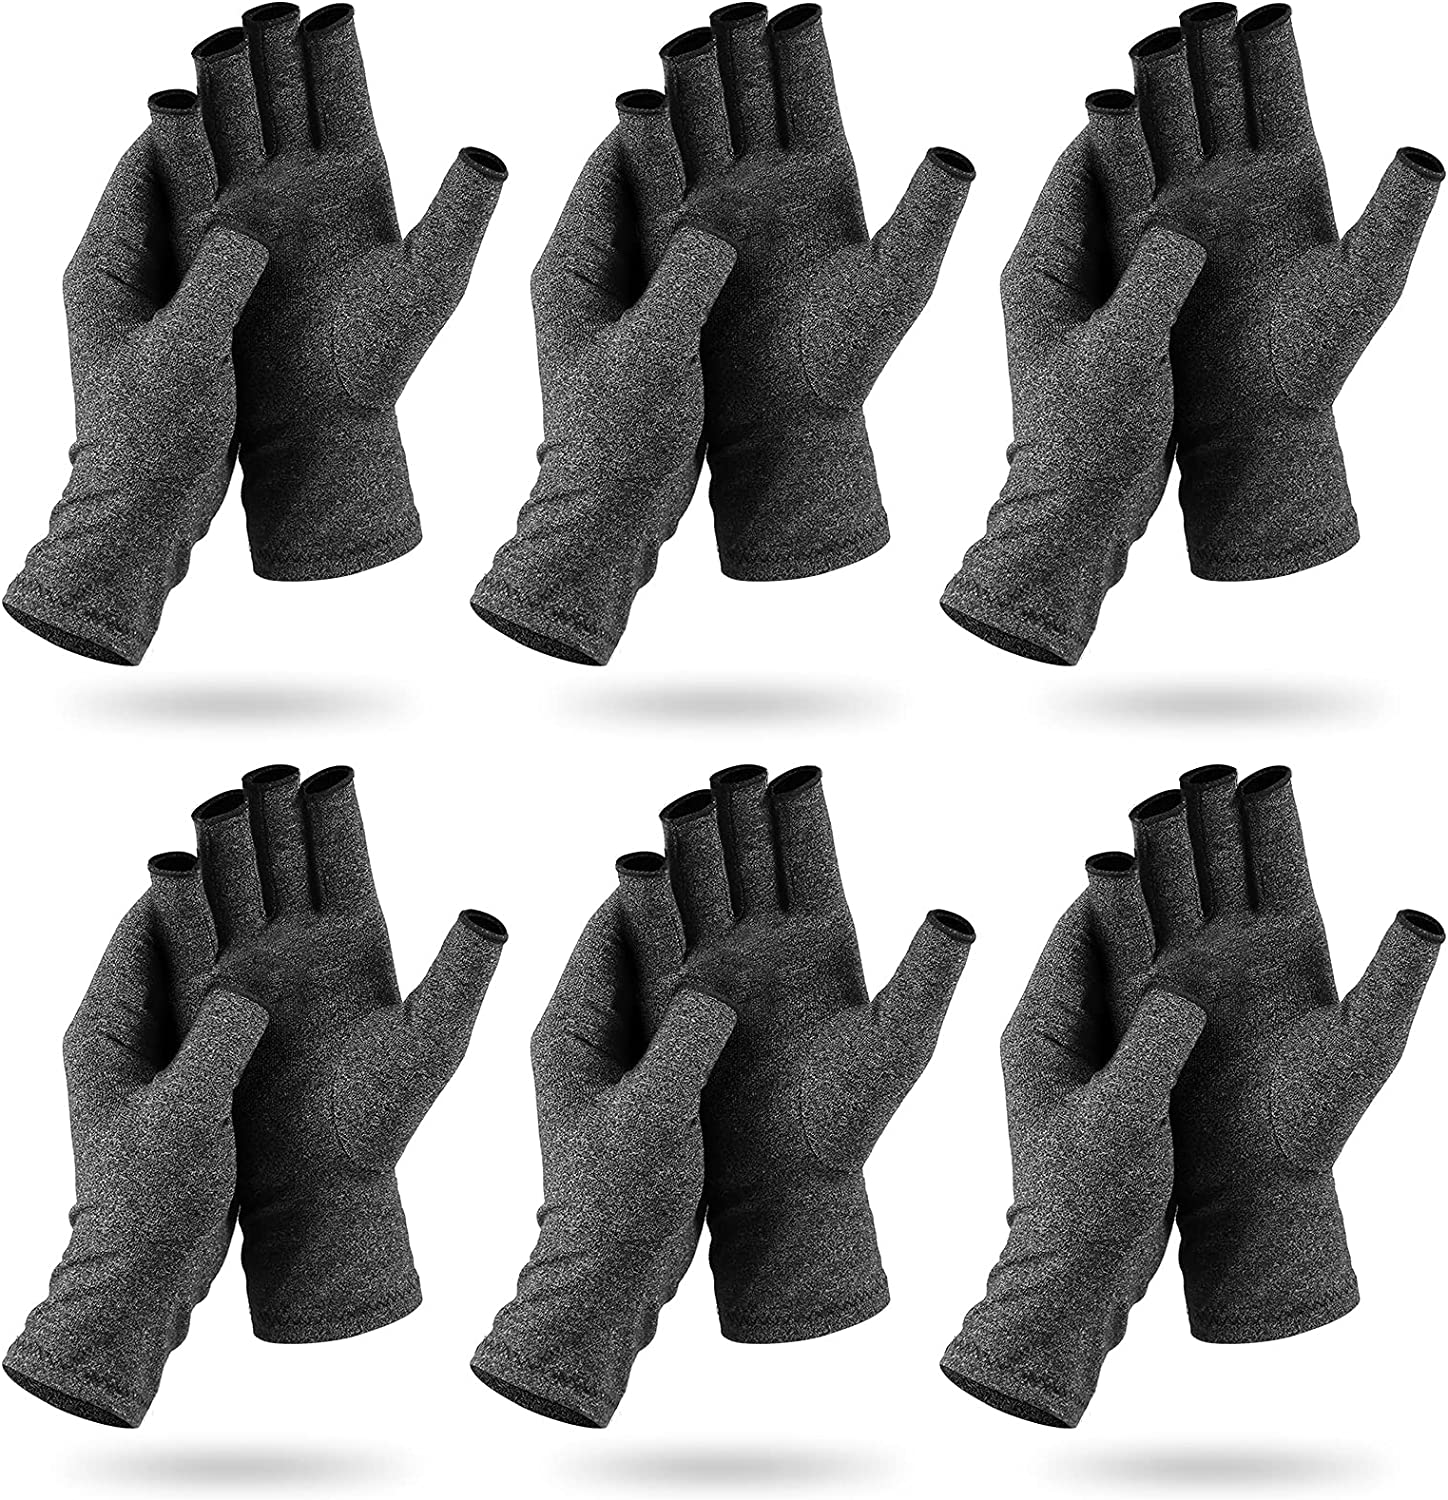 6 Pairs Arthritis Compression Glov Gloves for Women Max Max 59% OFF 86% OFF